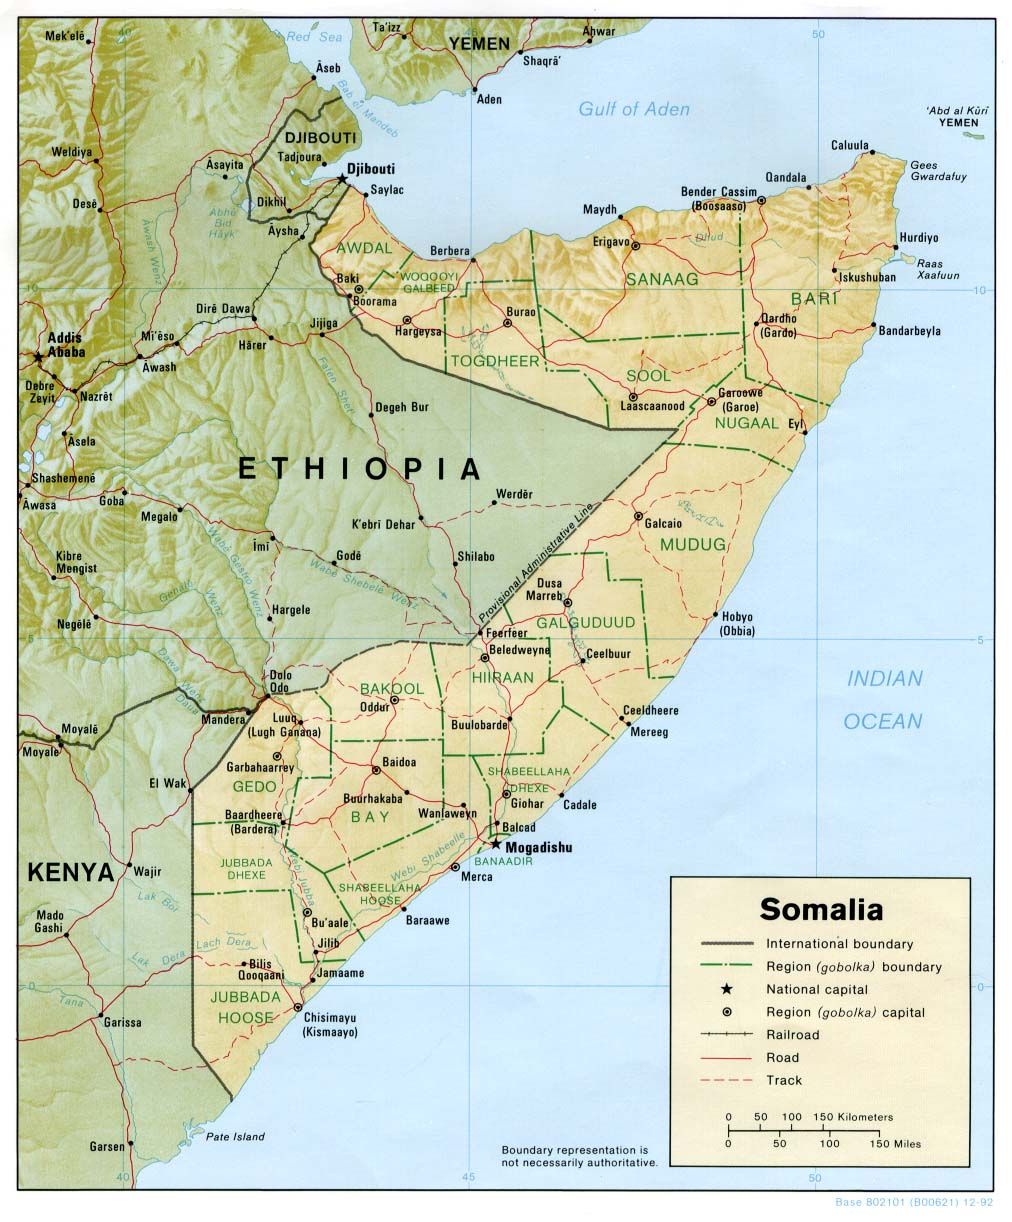 somalia maps. somalia maps  perrycastañeda map collection  ut library online